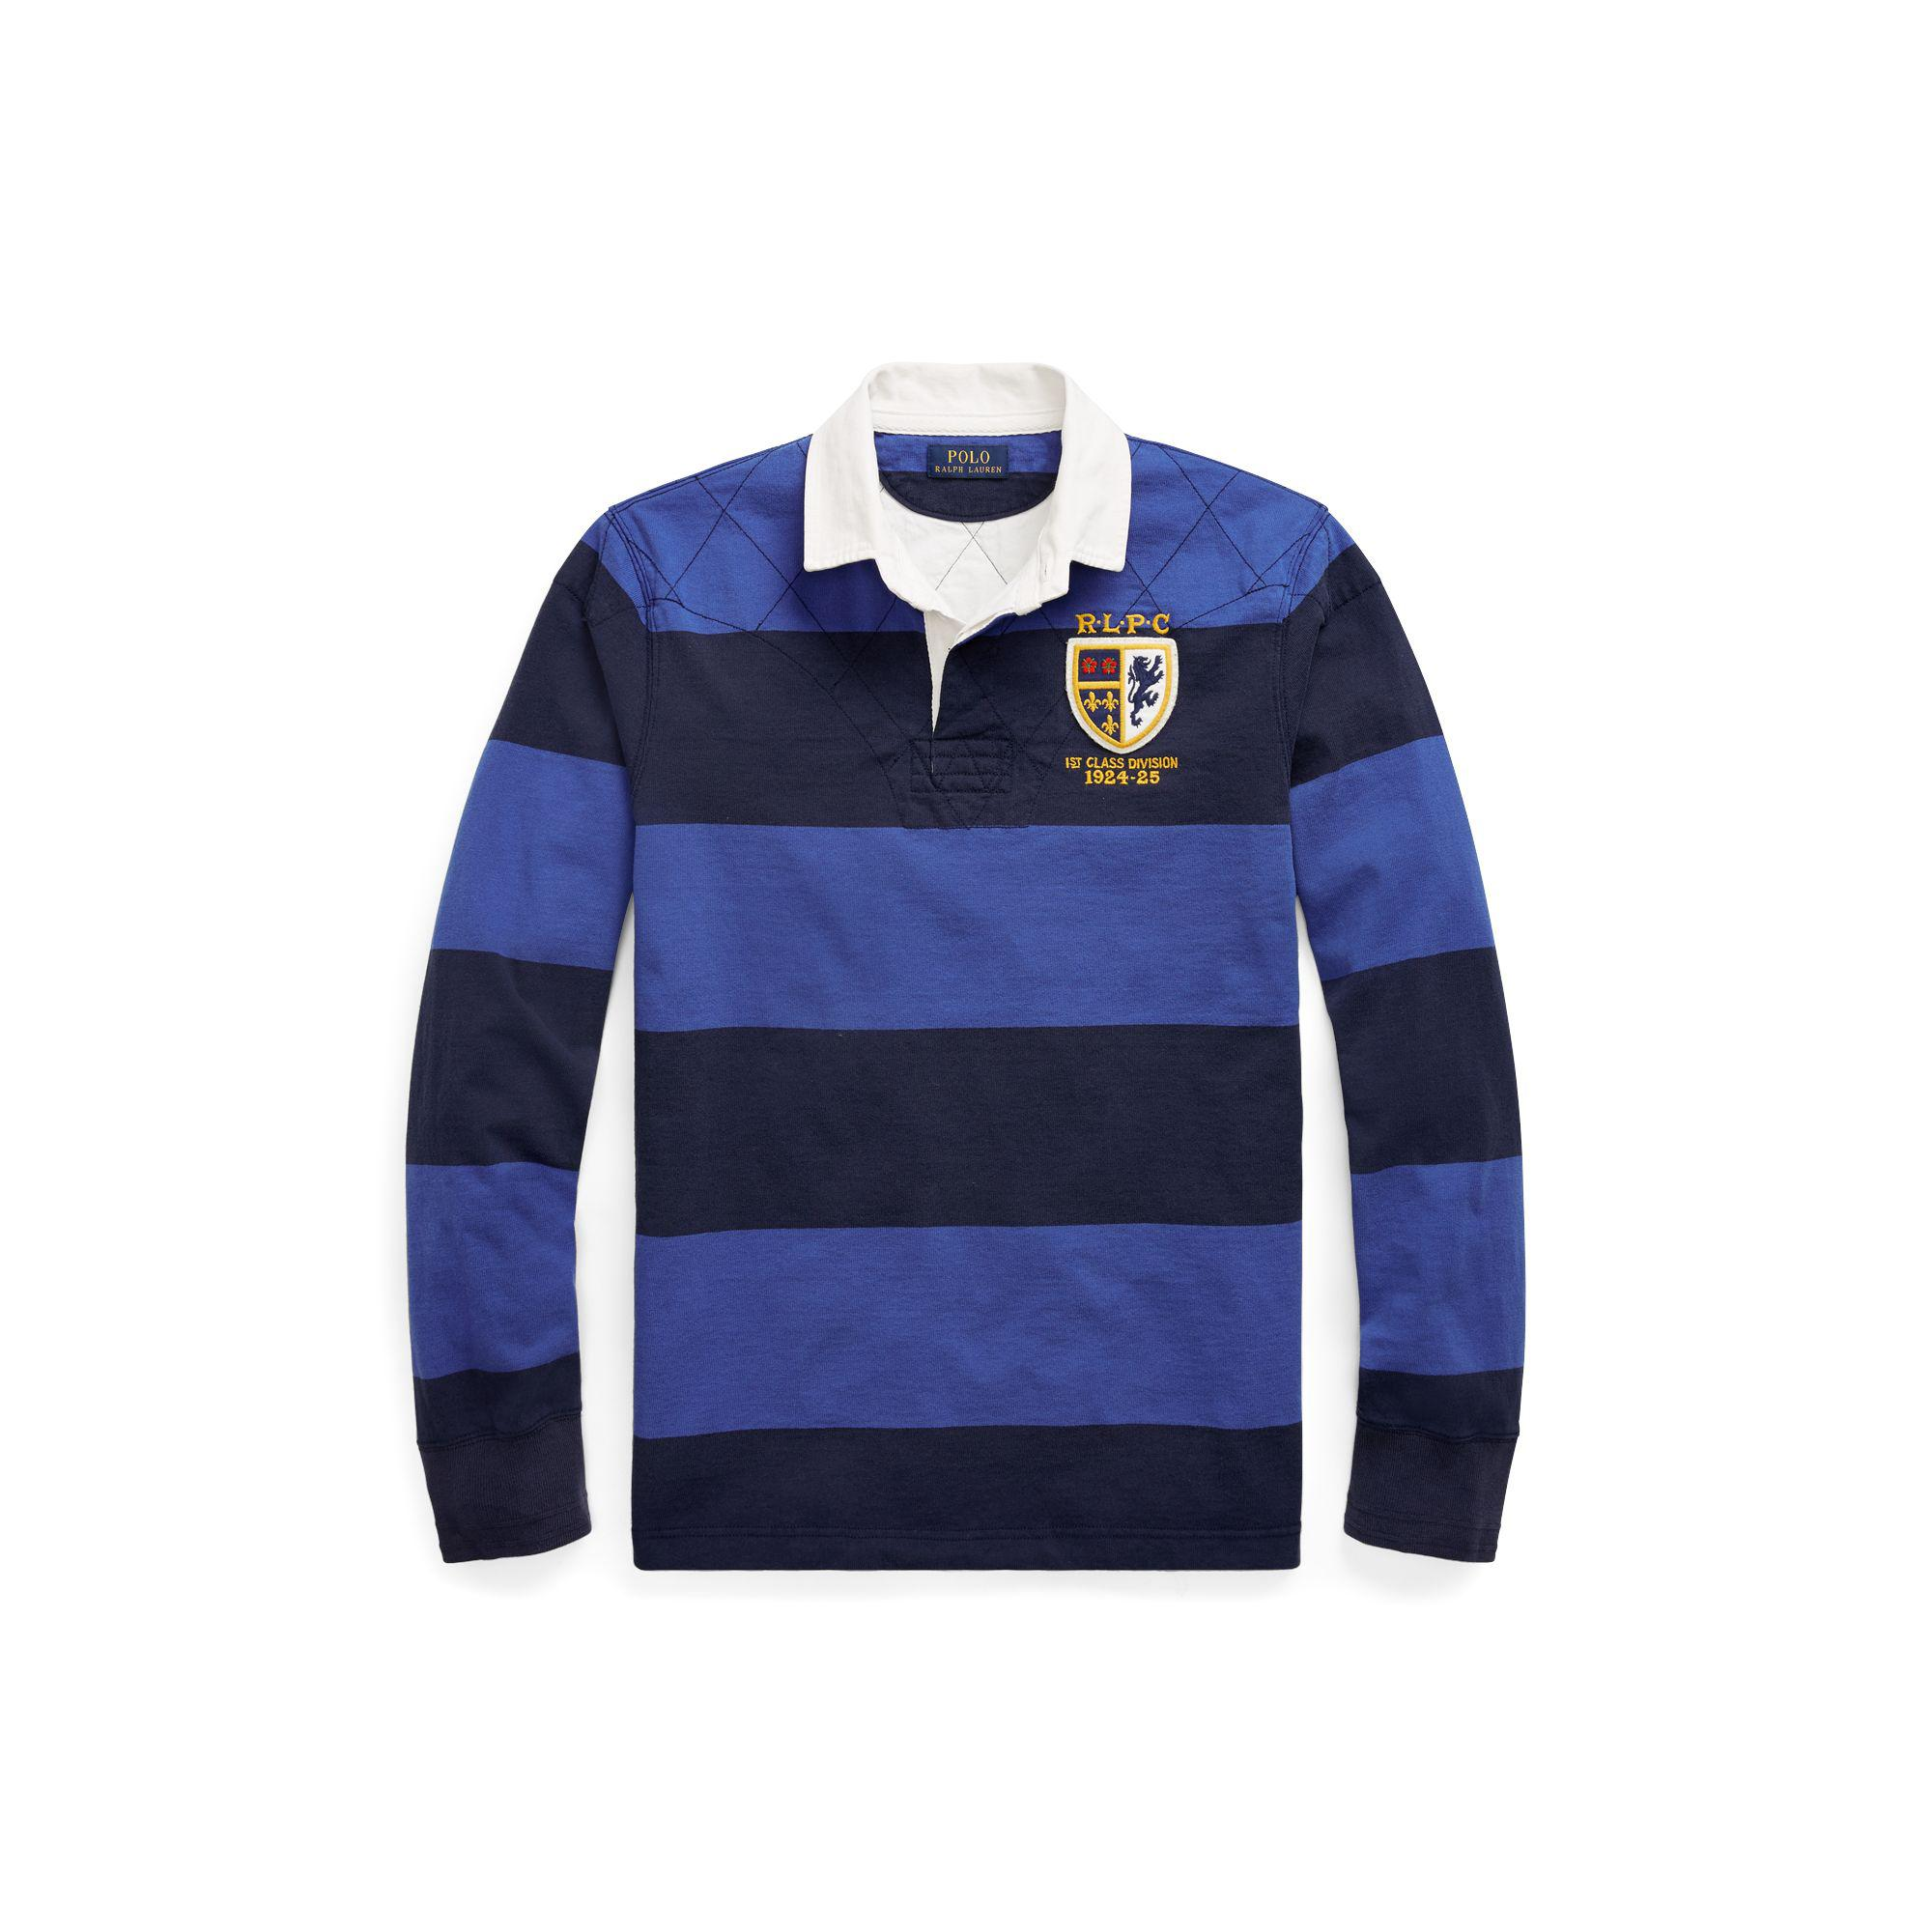 64d2d8fd97f Polo Ralph Lauren Custom Fit Navy Rugby Shirt - DREAMWORKS